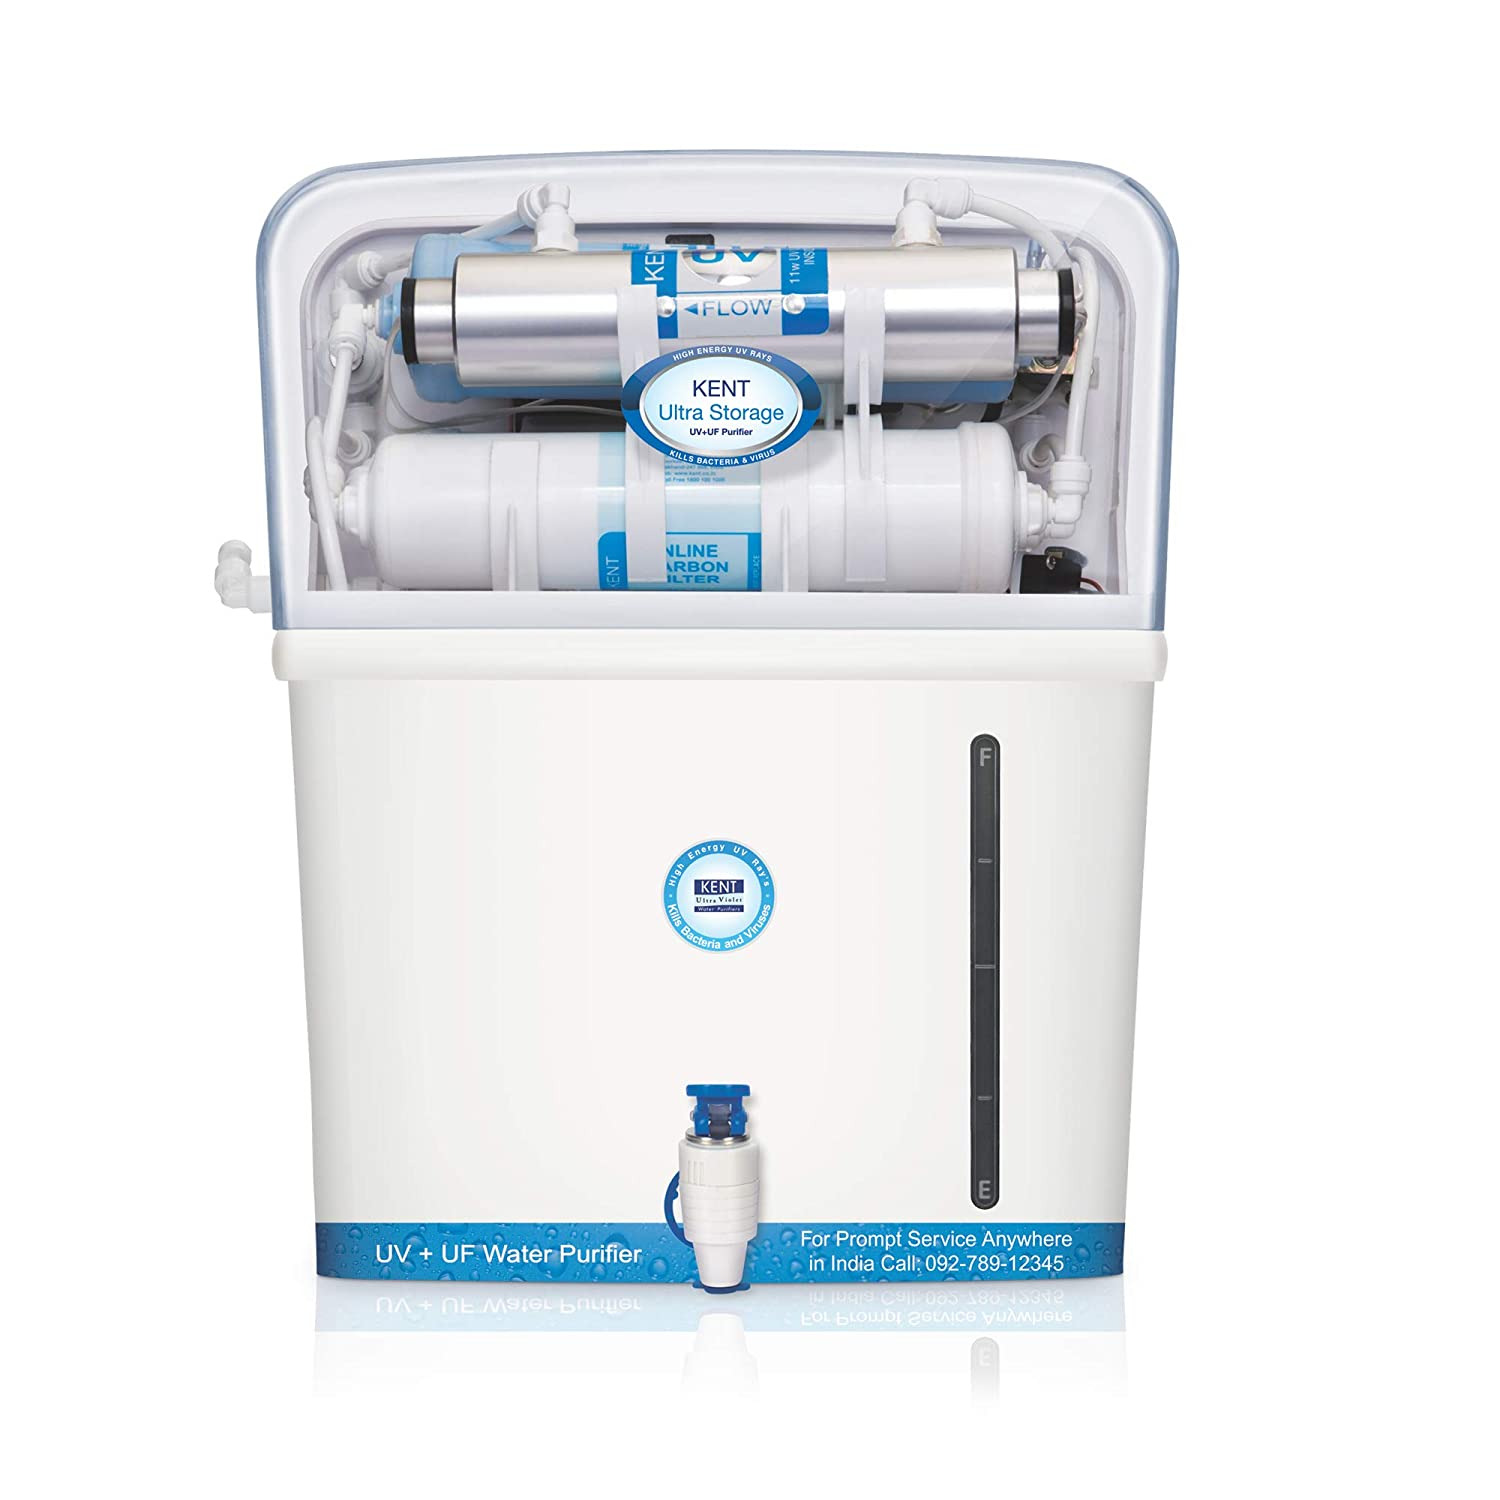 Kent Ultra Storage Water Purifer